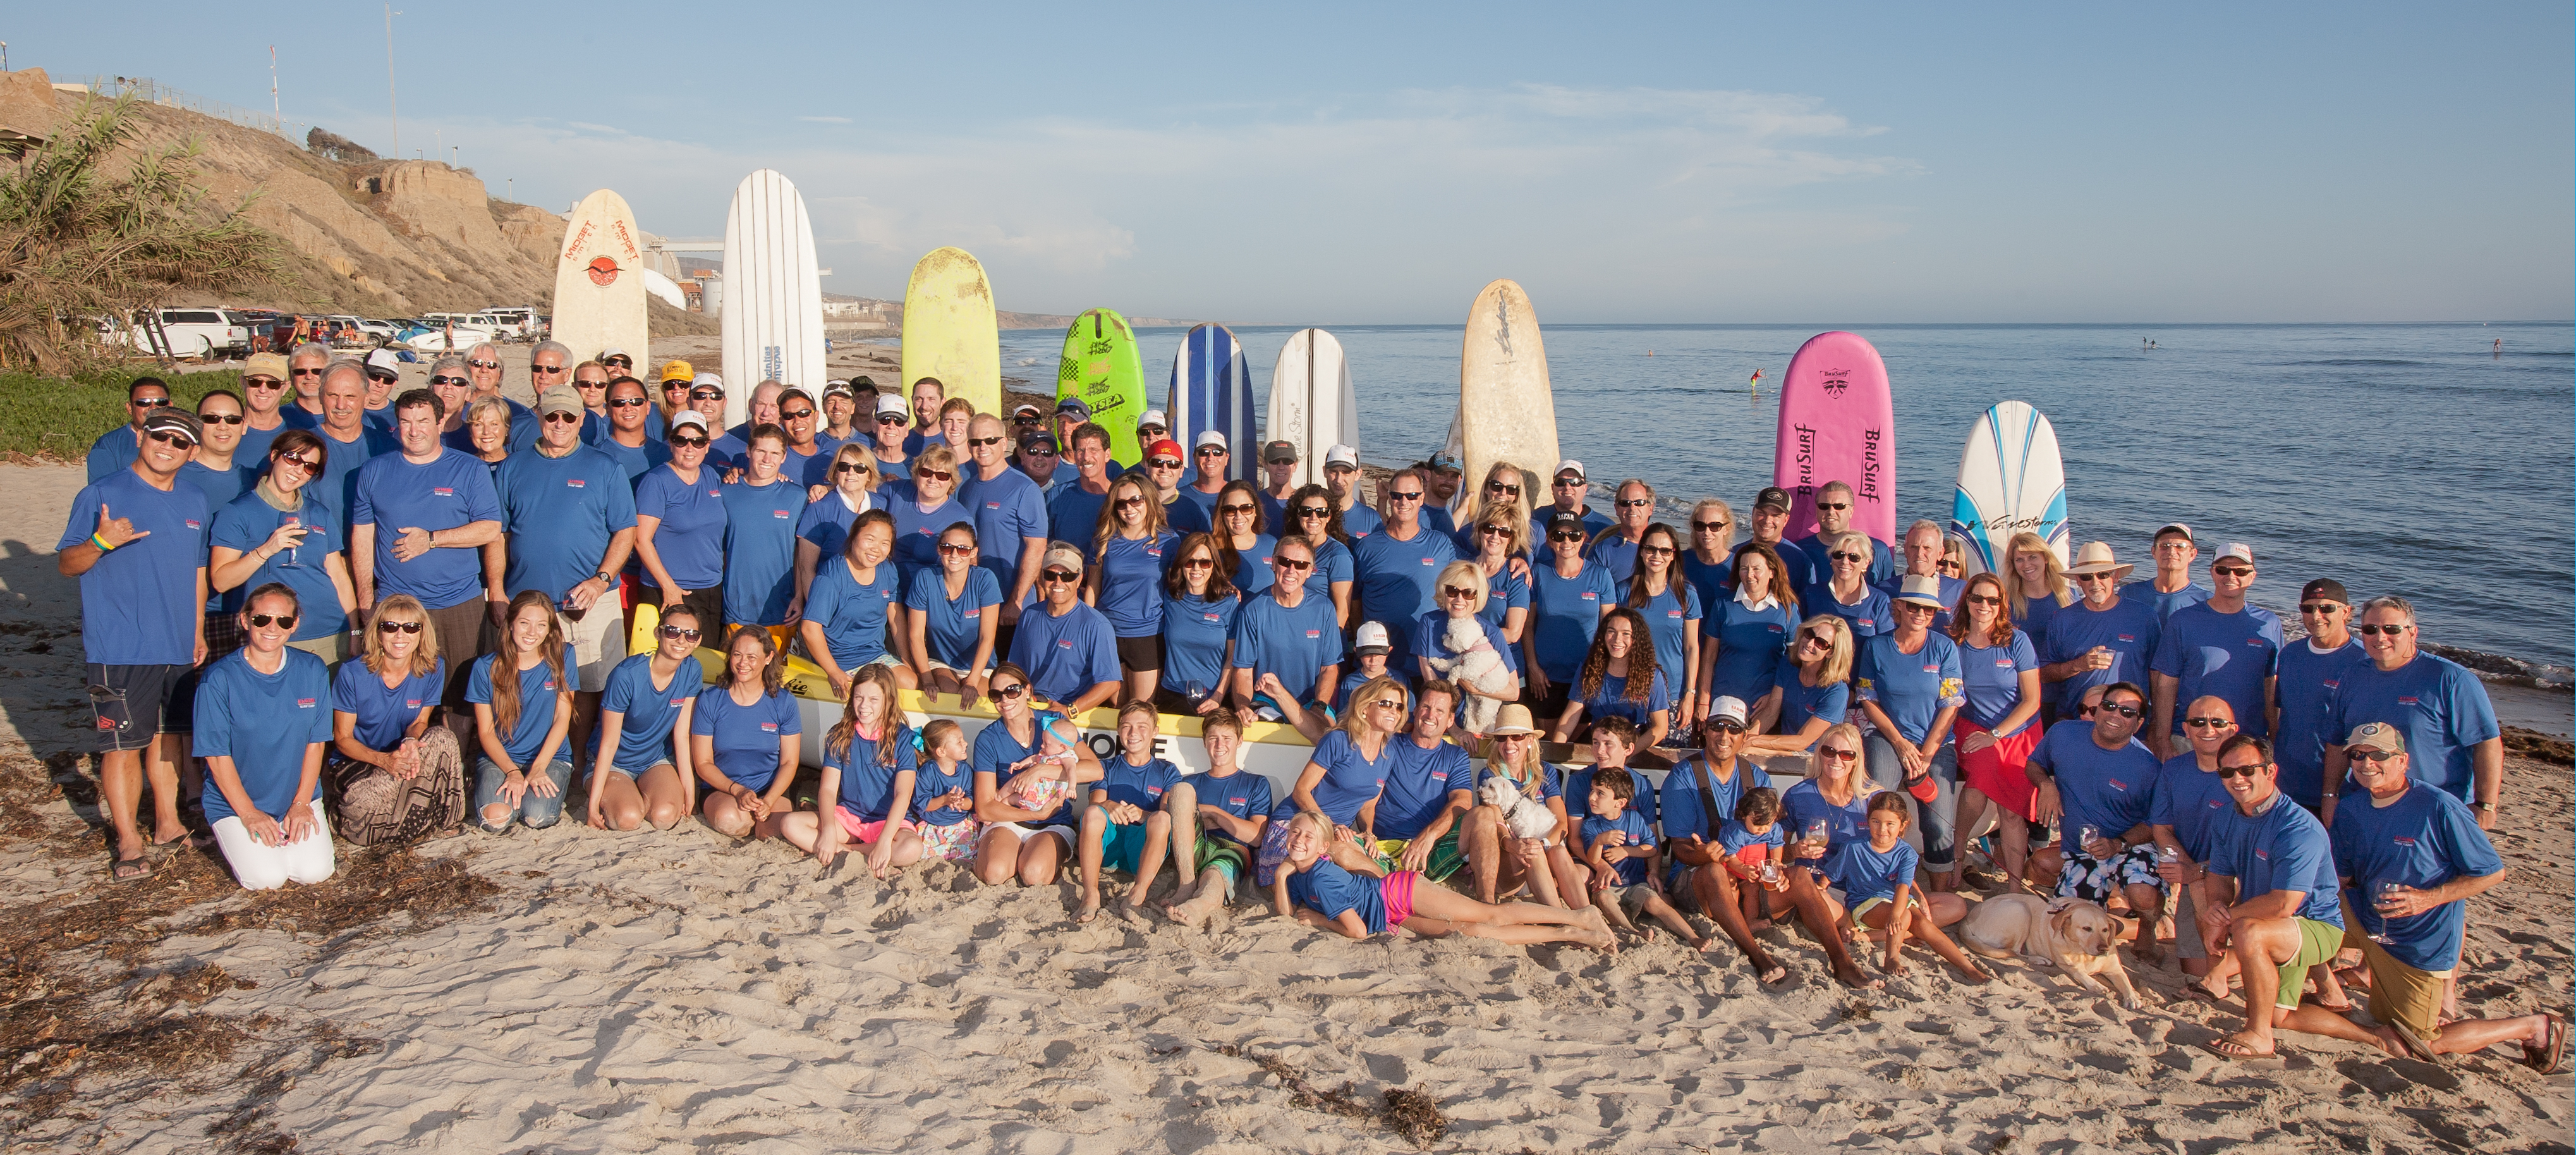 2013 Surf Camp Group Shot